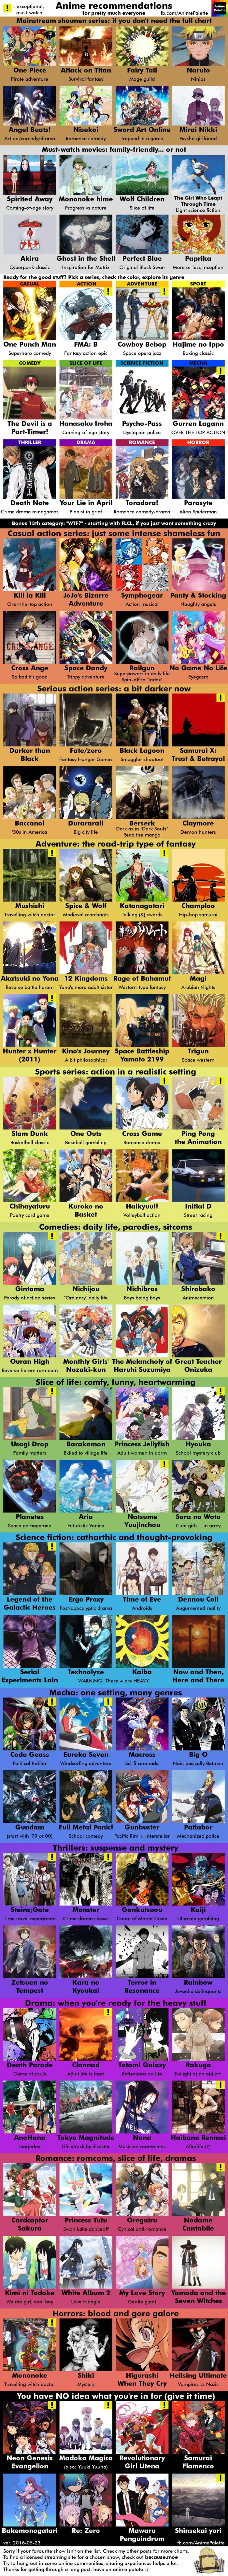 Anime recommendations for everyone